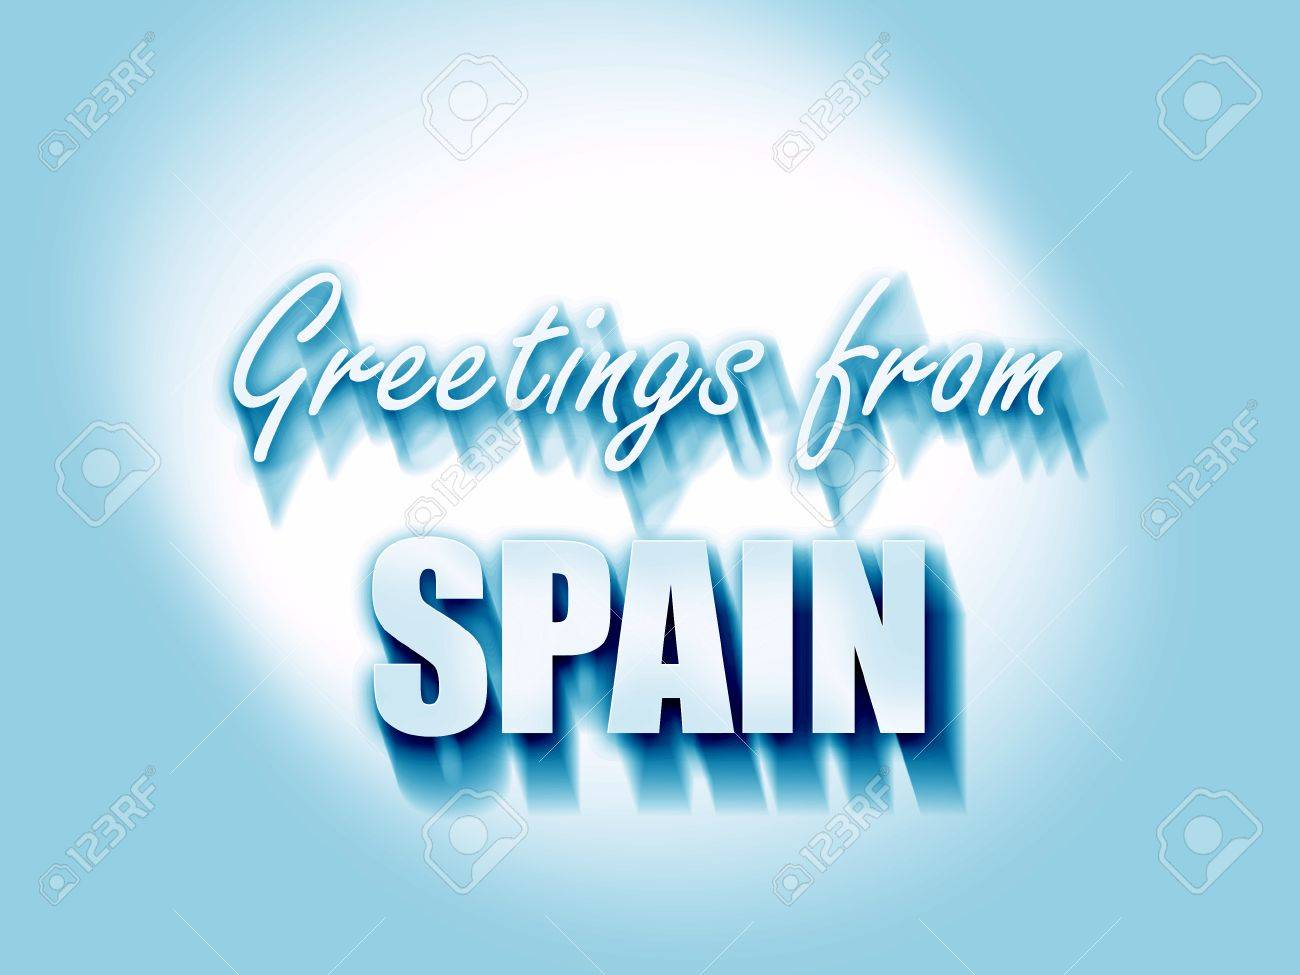 Greetings from spain card with some soft highlights stock photo greetings from spain card with some soft highlights stock photo 54579082 m4hsunfo